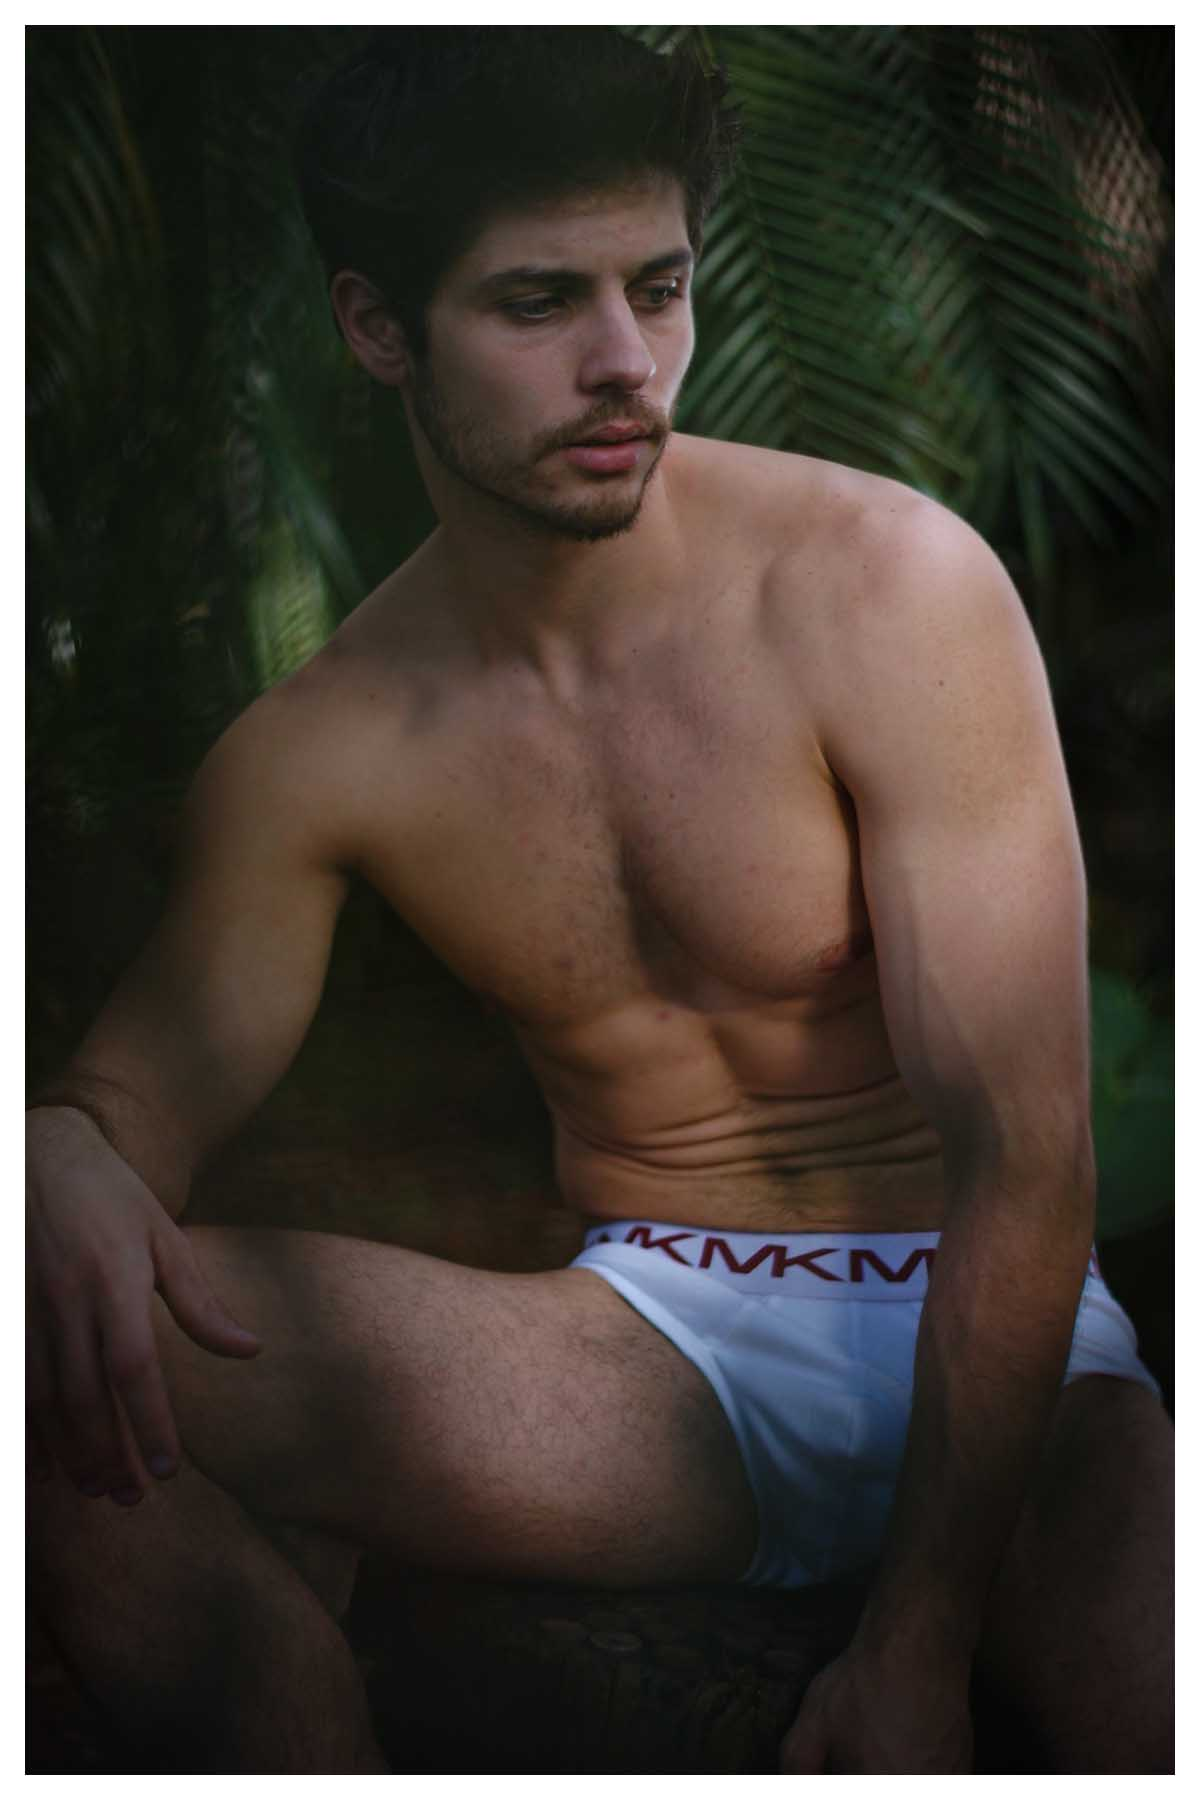 Eduardo Gasparoni by Vinicius Ziehe for Brazilian Male Model